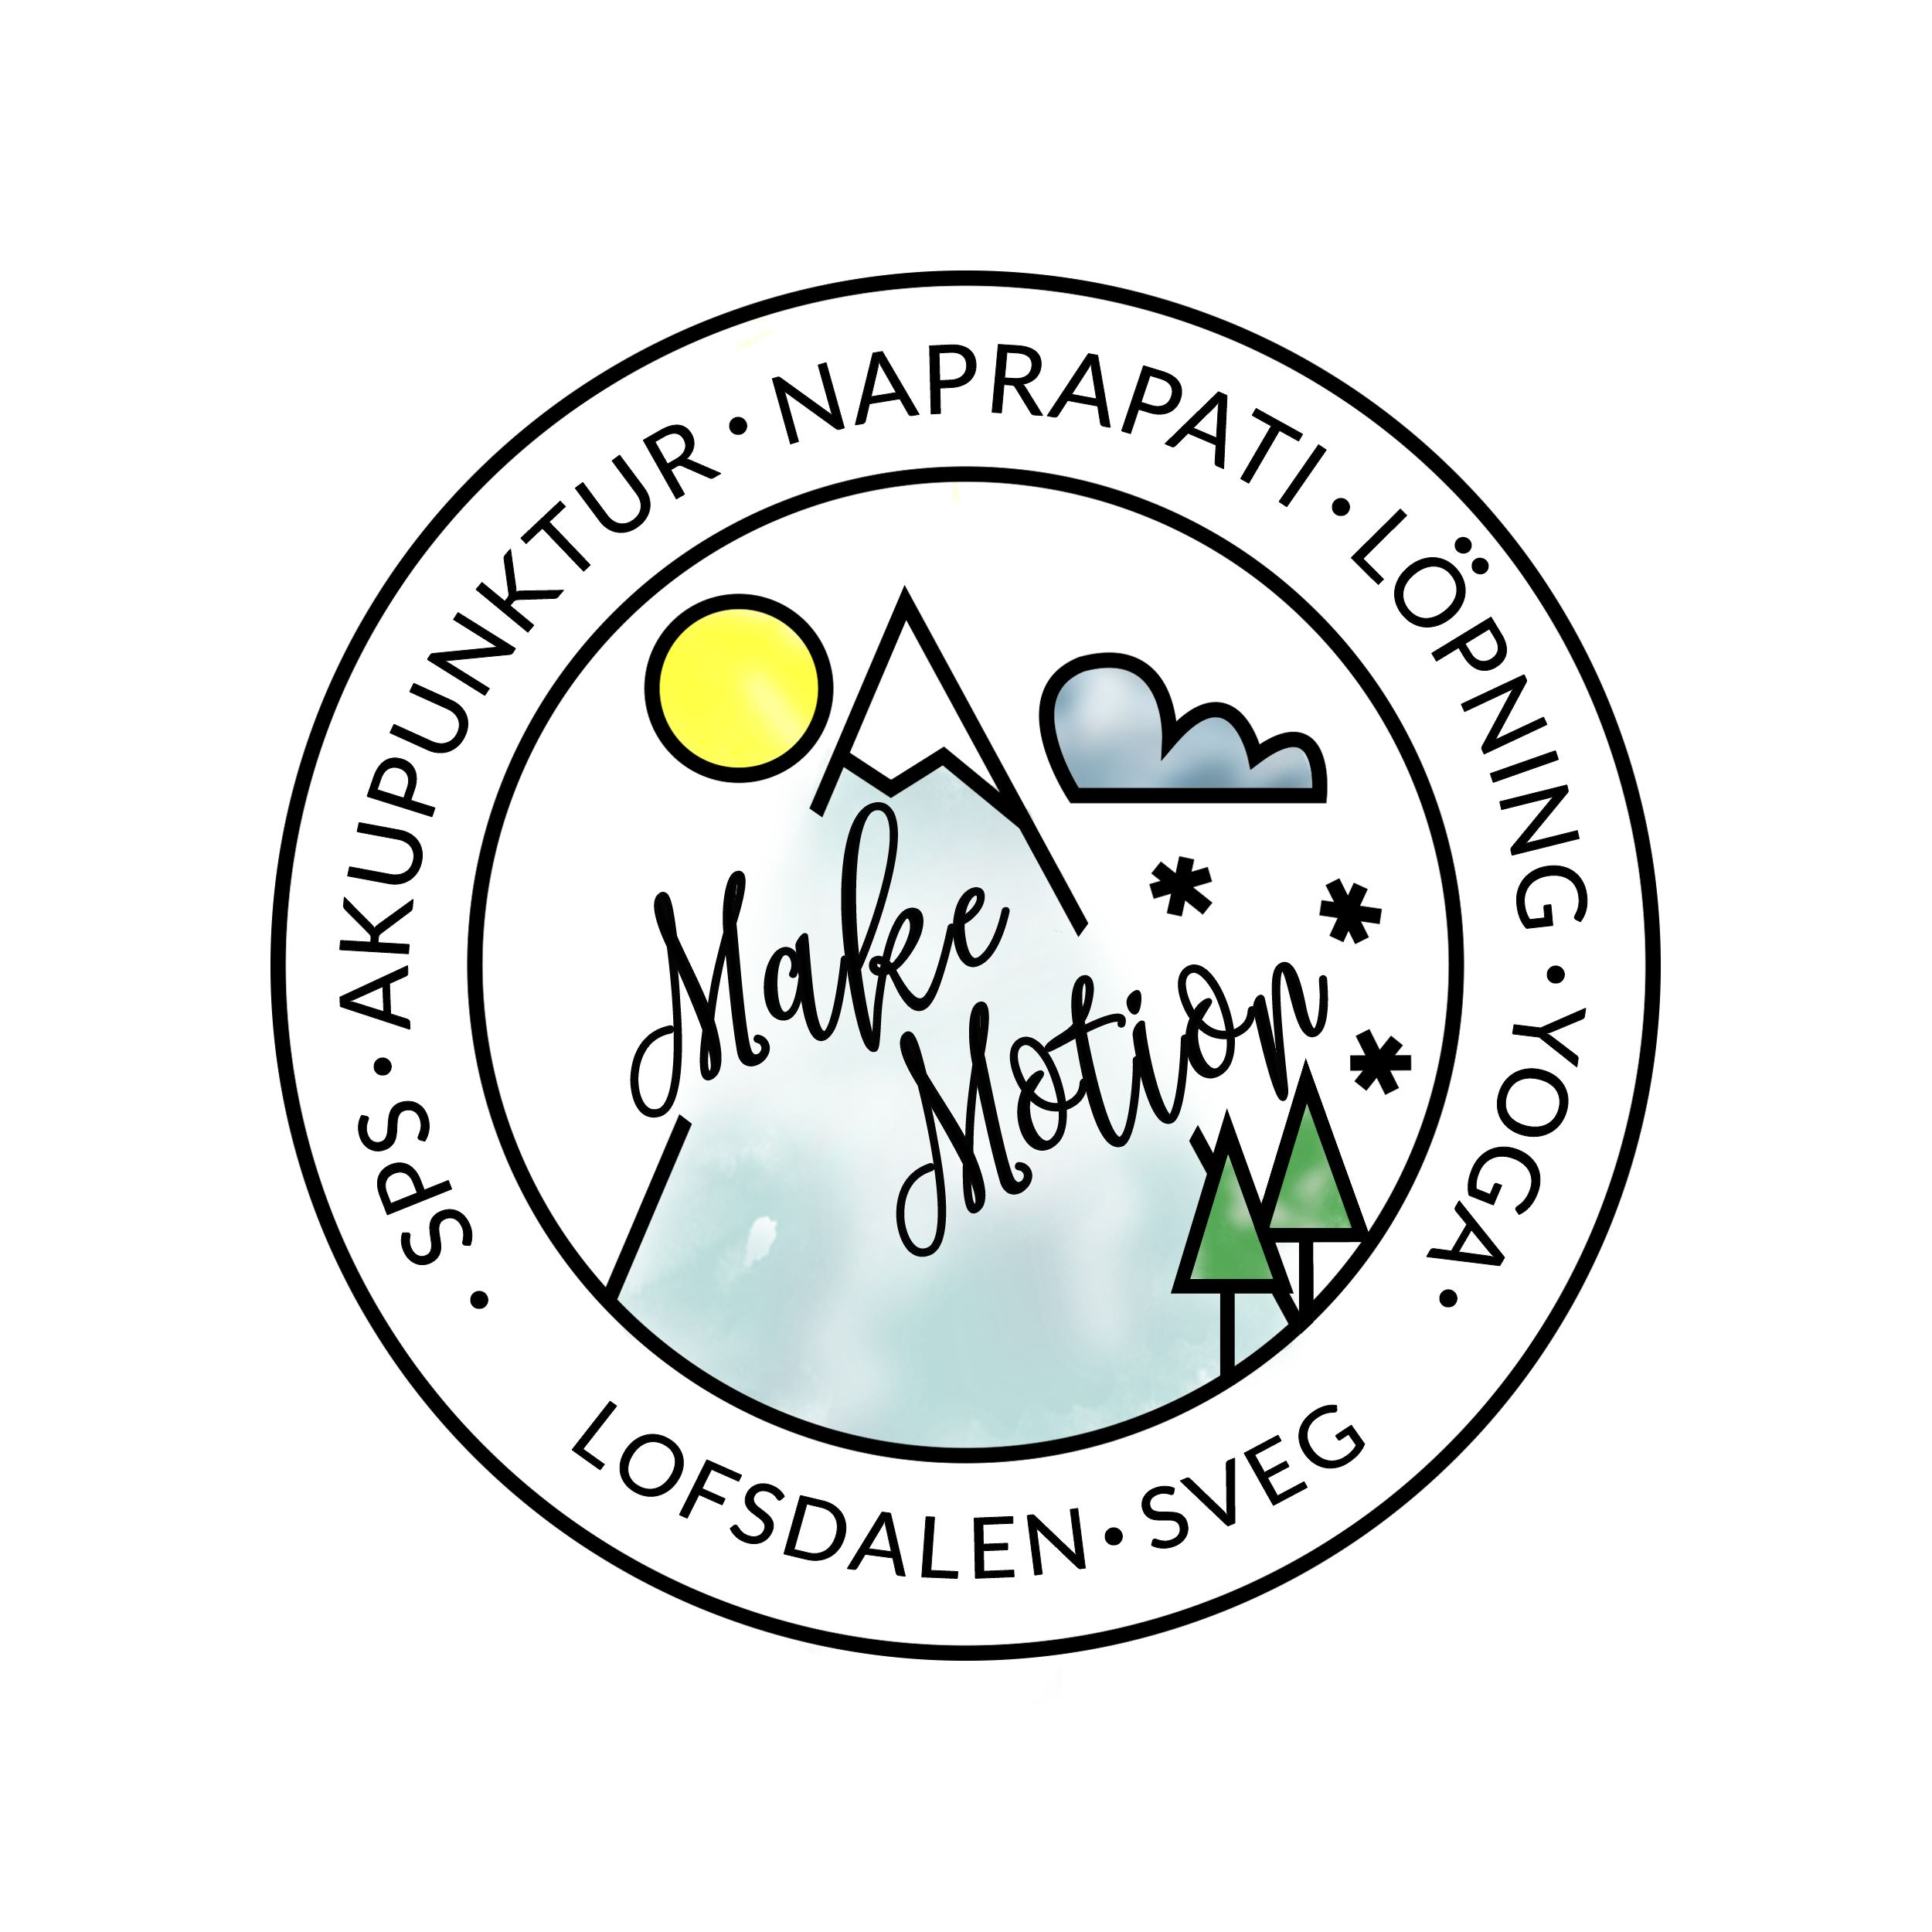 Make Motion Lofsdalen